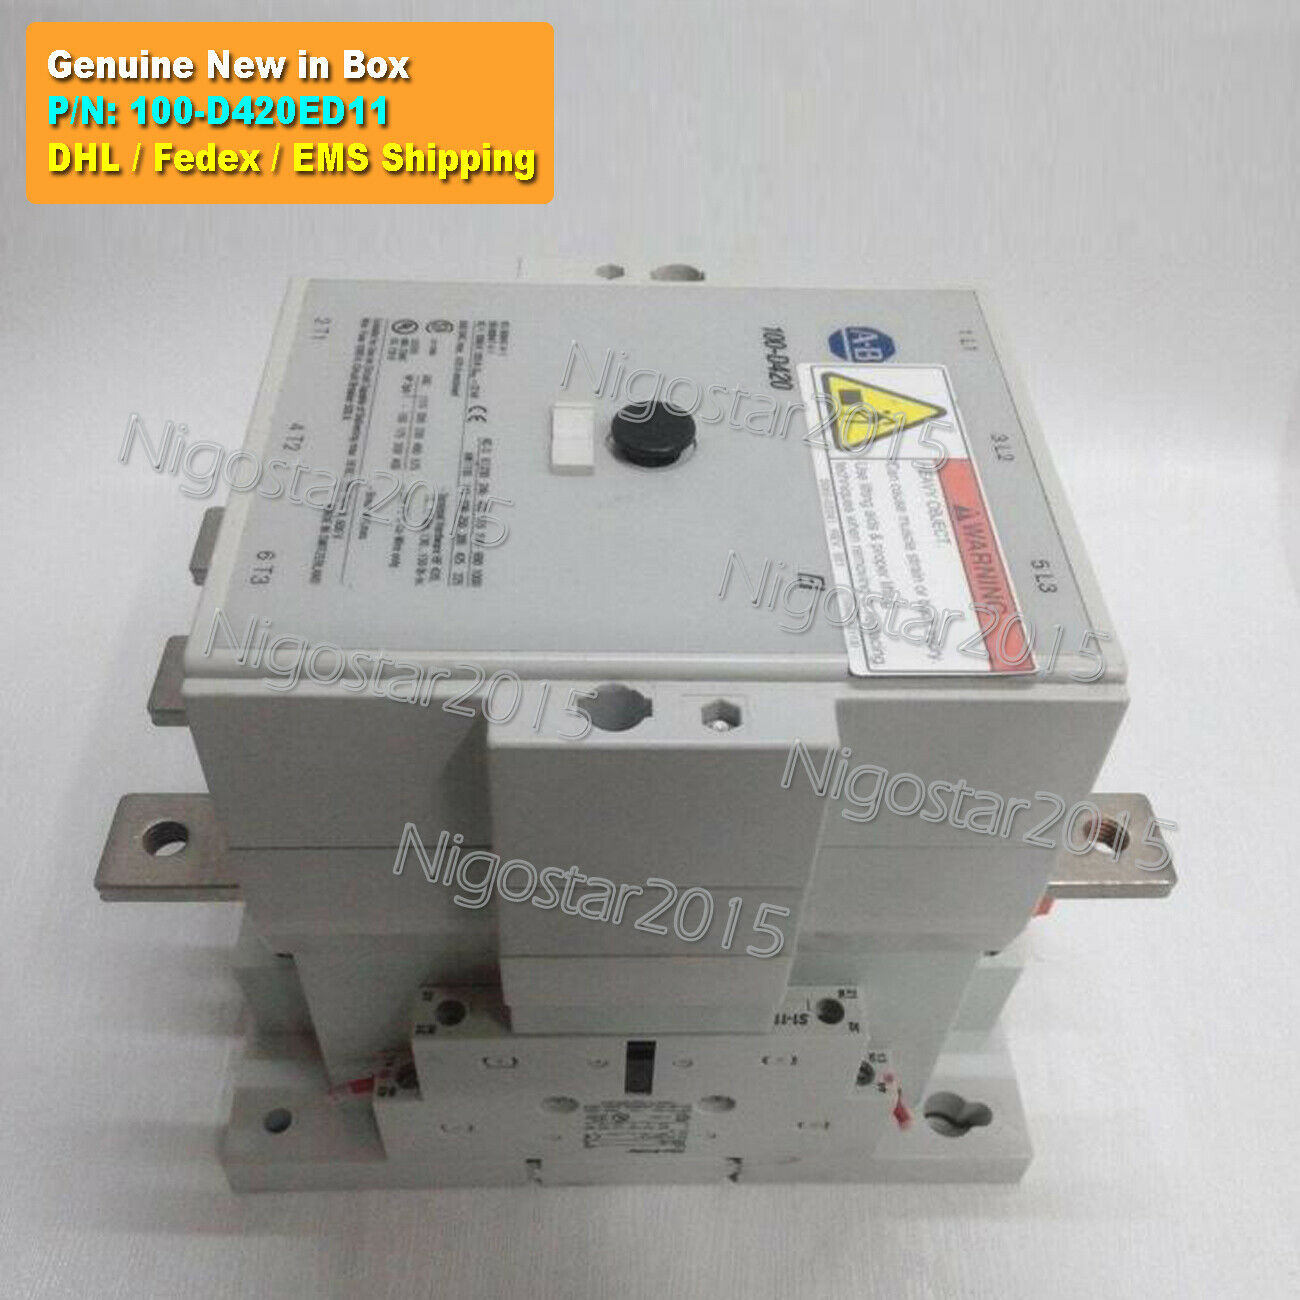 1PC New in Box 100-D420ED11 110-130V Contactor 100-D420 ED11 DHL Fedex Shipping